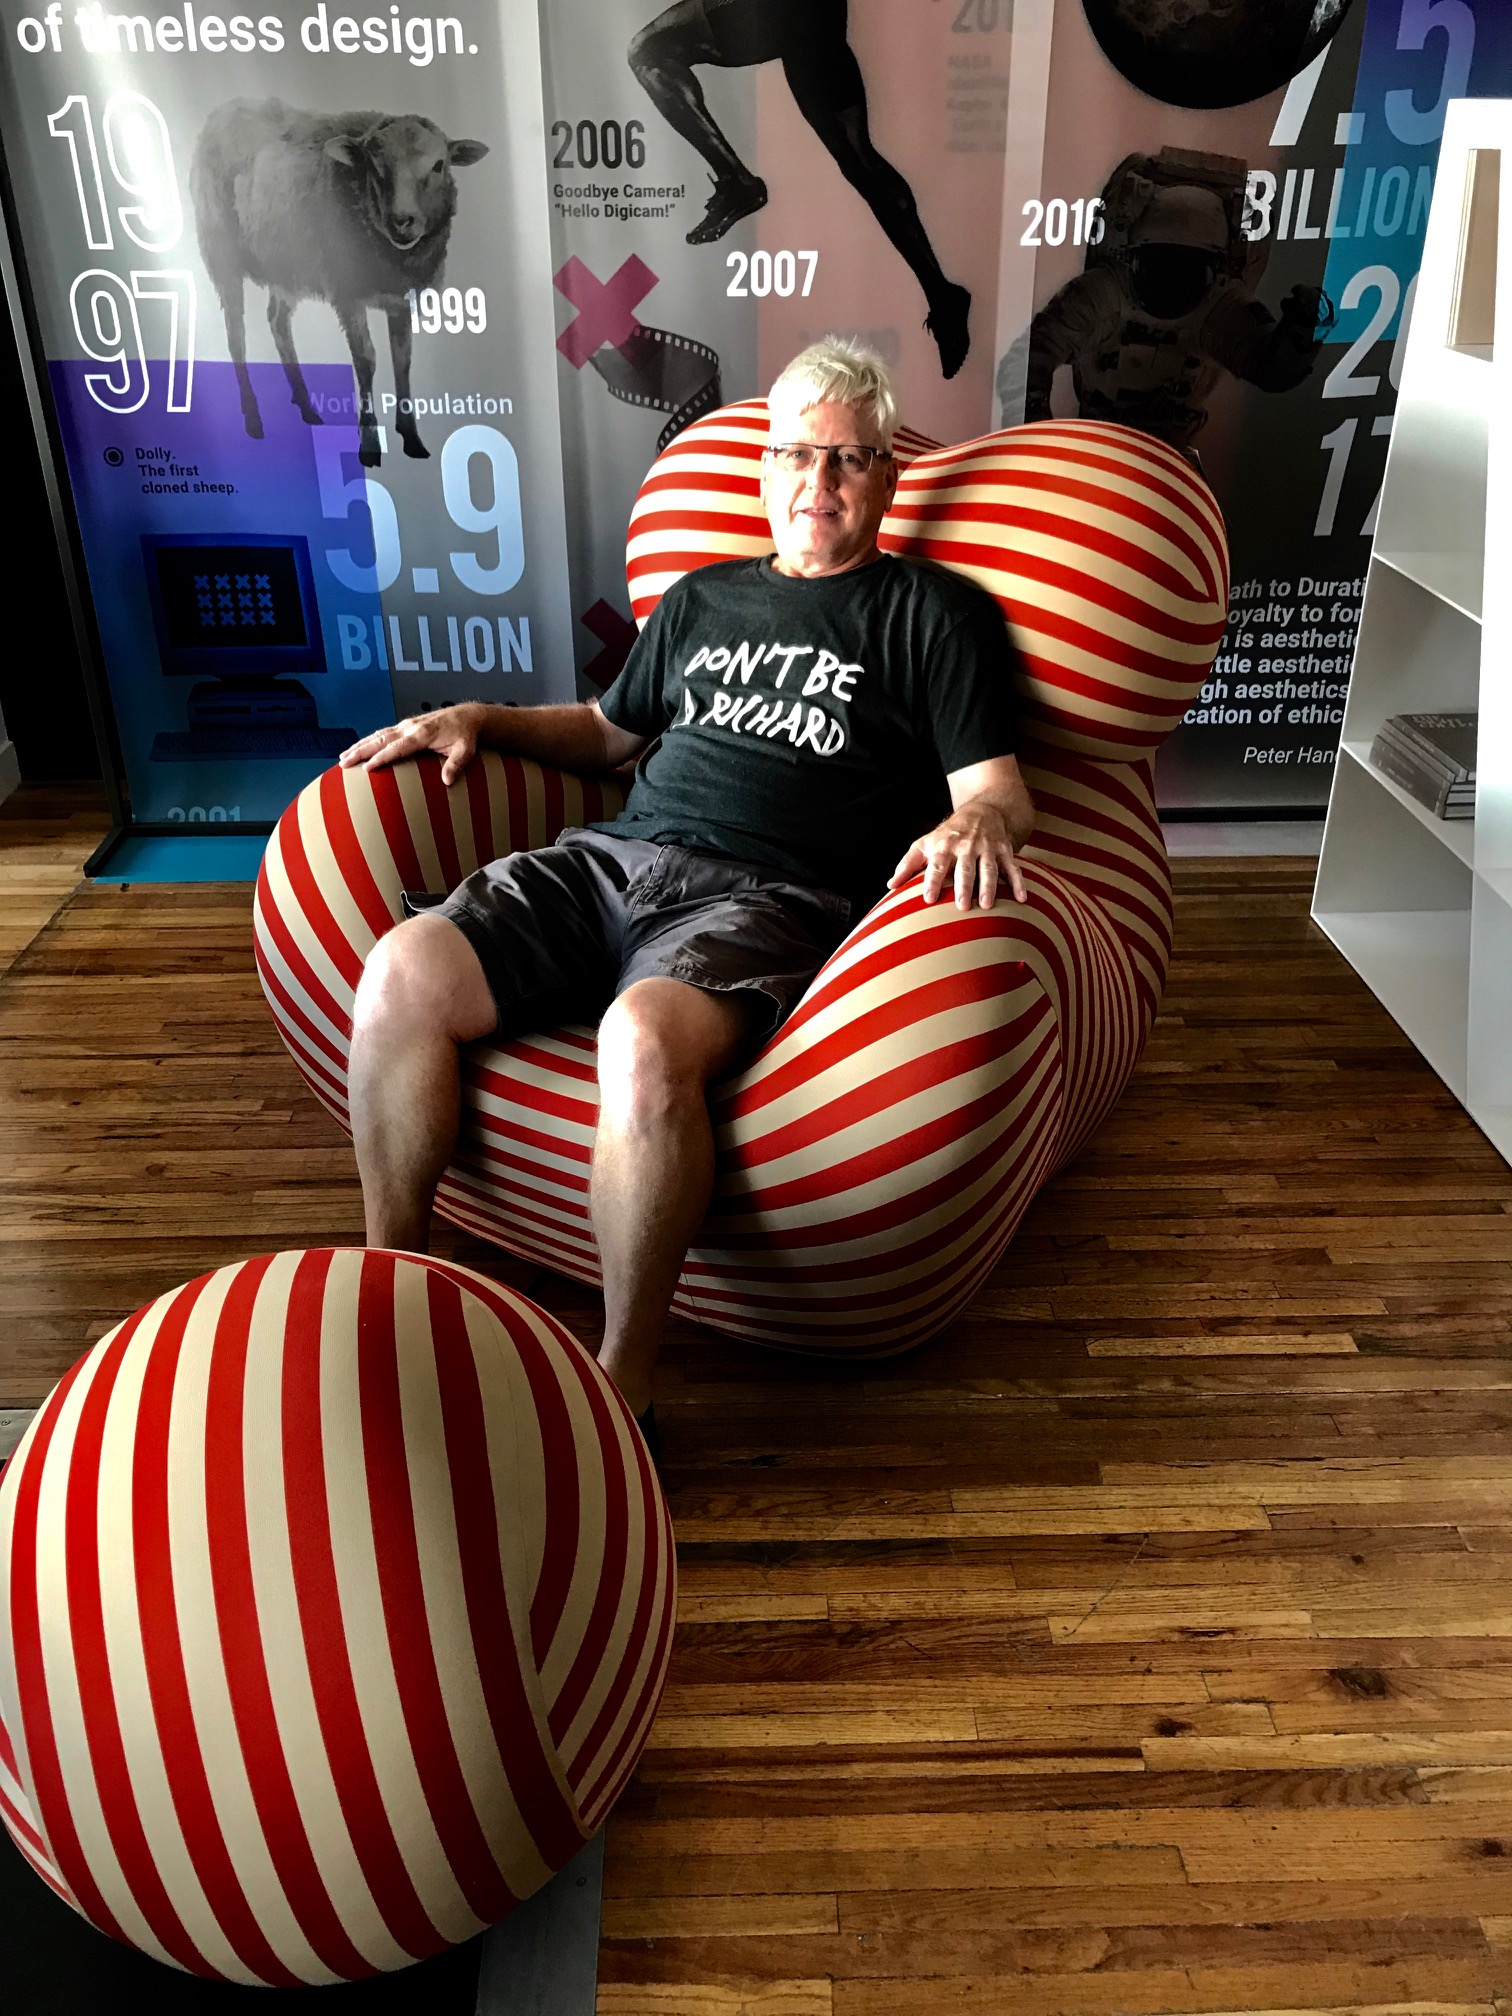 While wandering Inglewood's funky Main Street I found this fun chair. Ironically, I have been looking for a Netflix binging chair for over a year. I didn't have the balls to buy it!